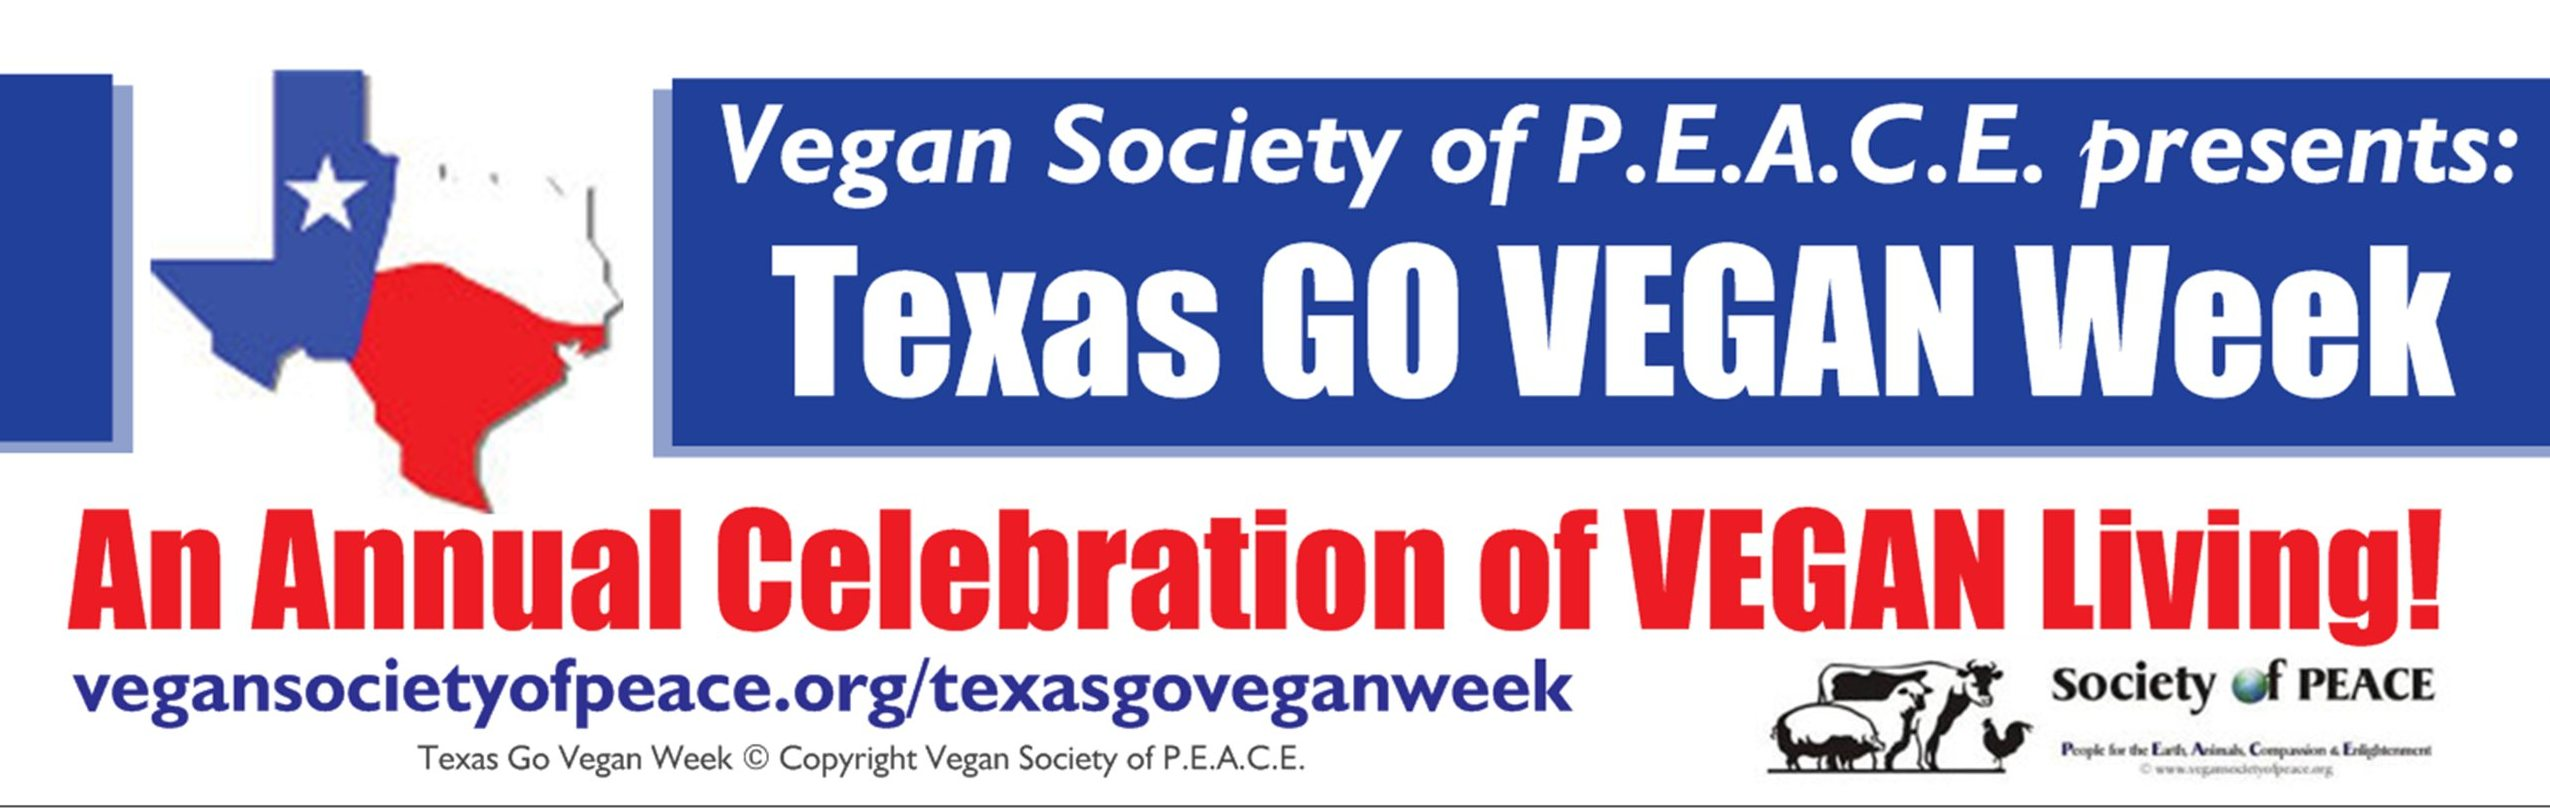 Texas Go Vegan Week Vegan Society of PEACE Annual